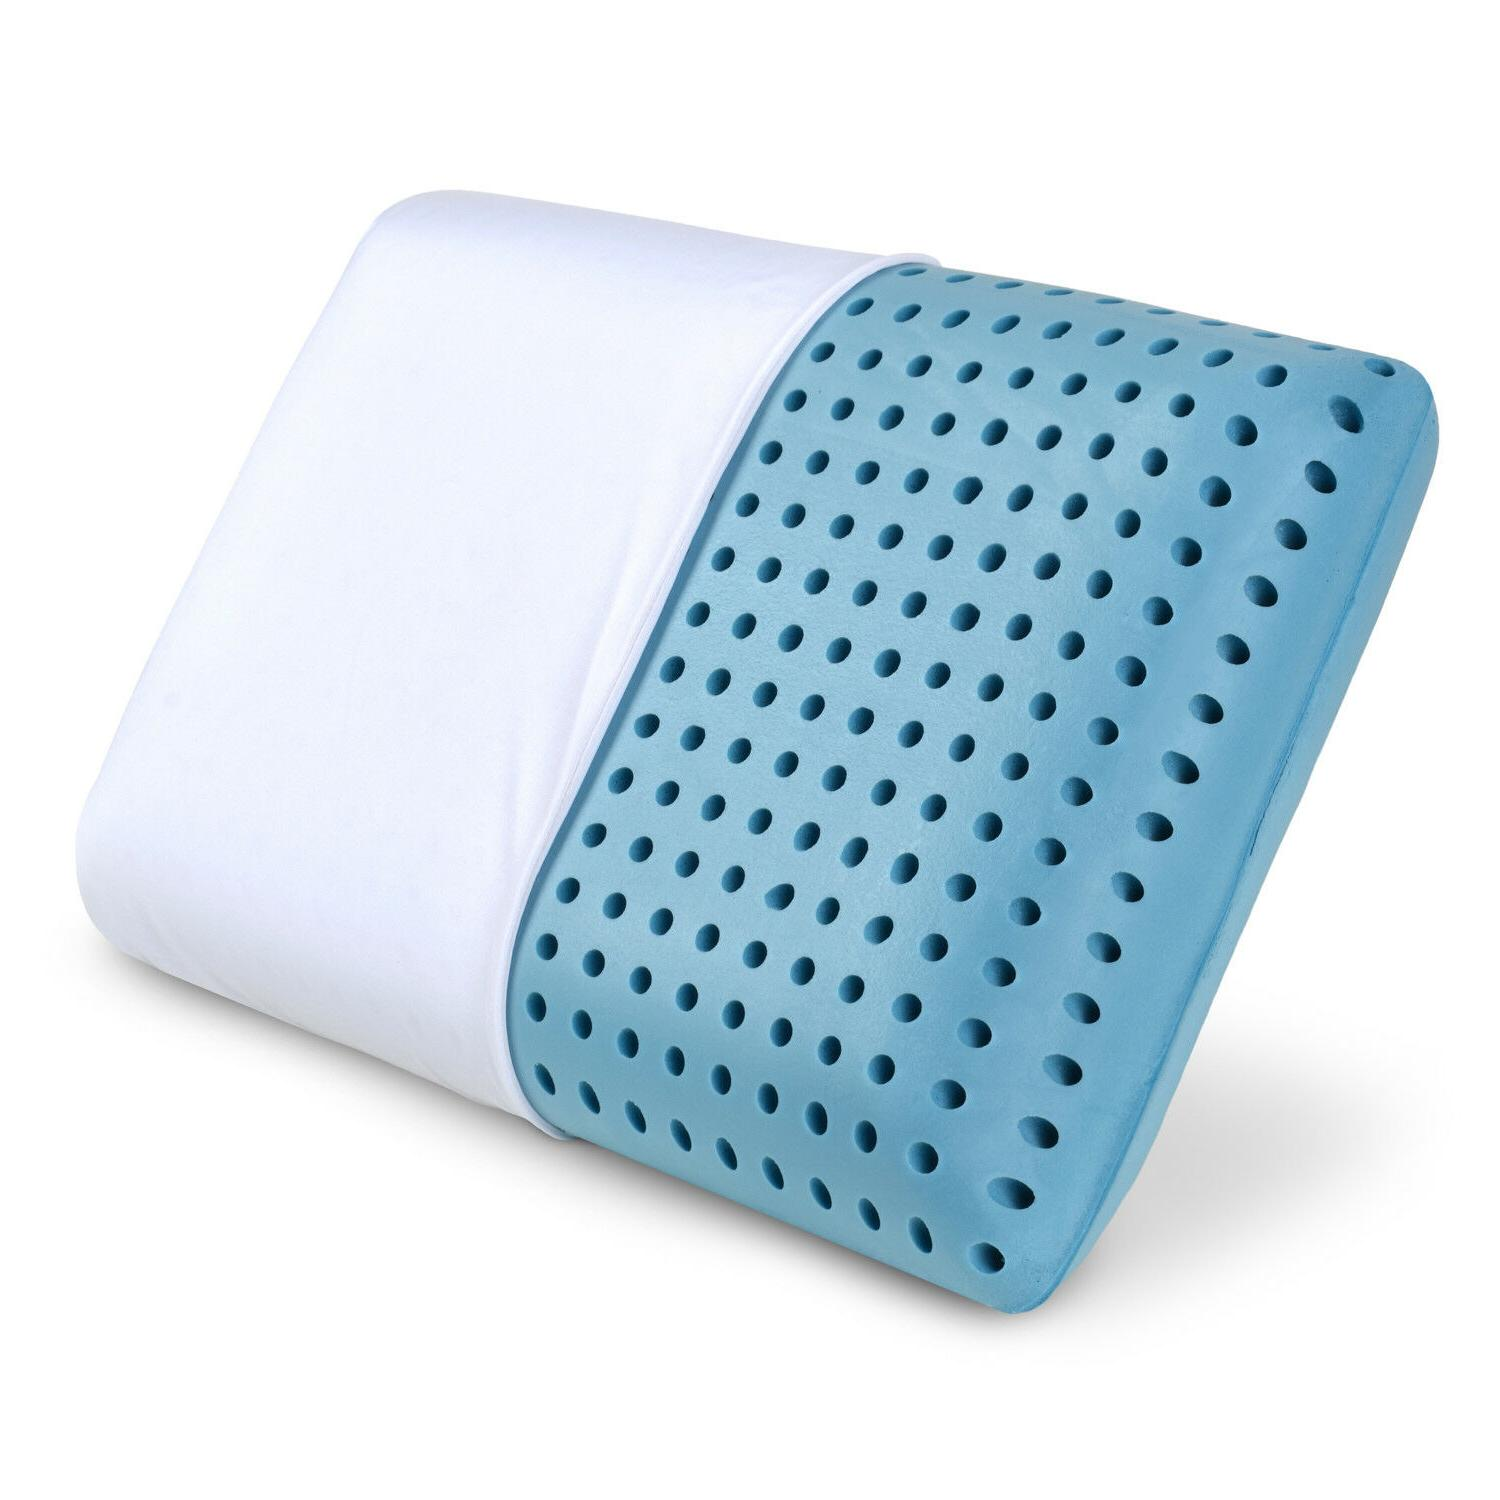 cooling memory foam pillow ventilated bed pillow